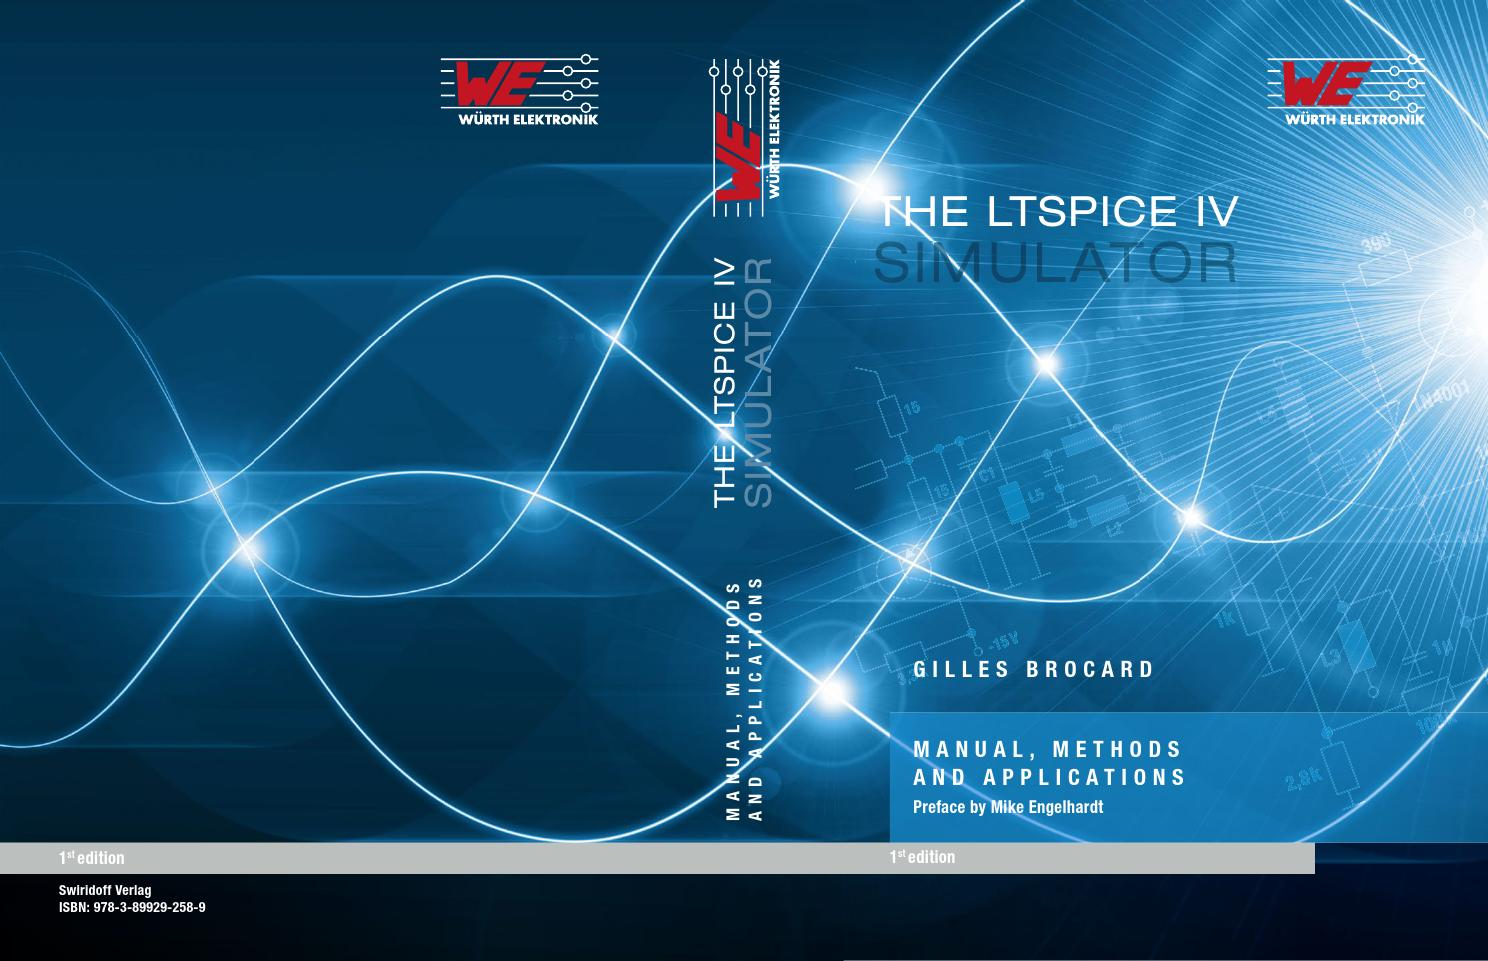 Preview ltspice iv simulator by Elektor - issuu